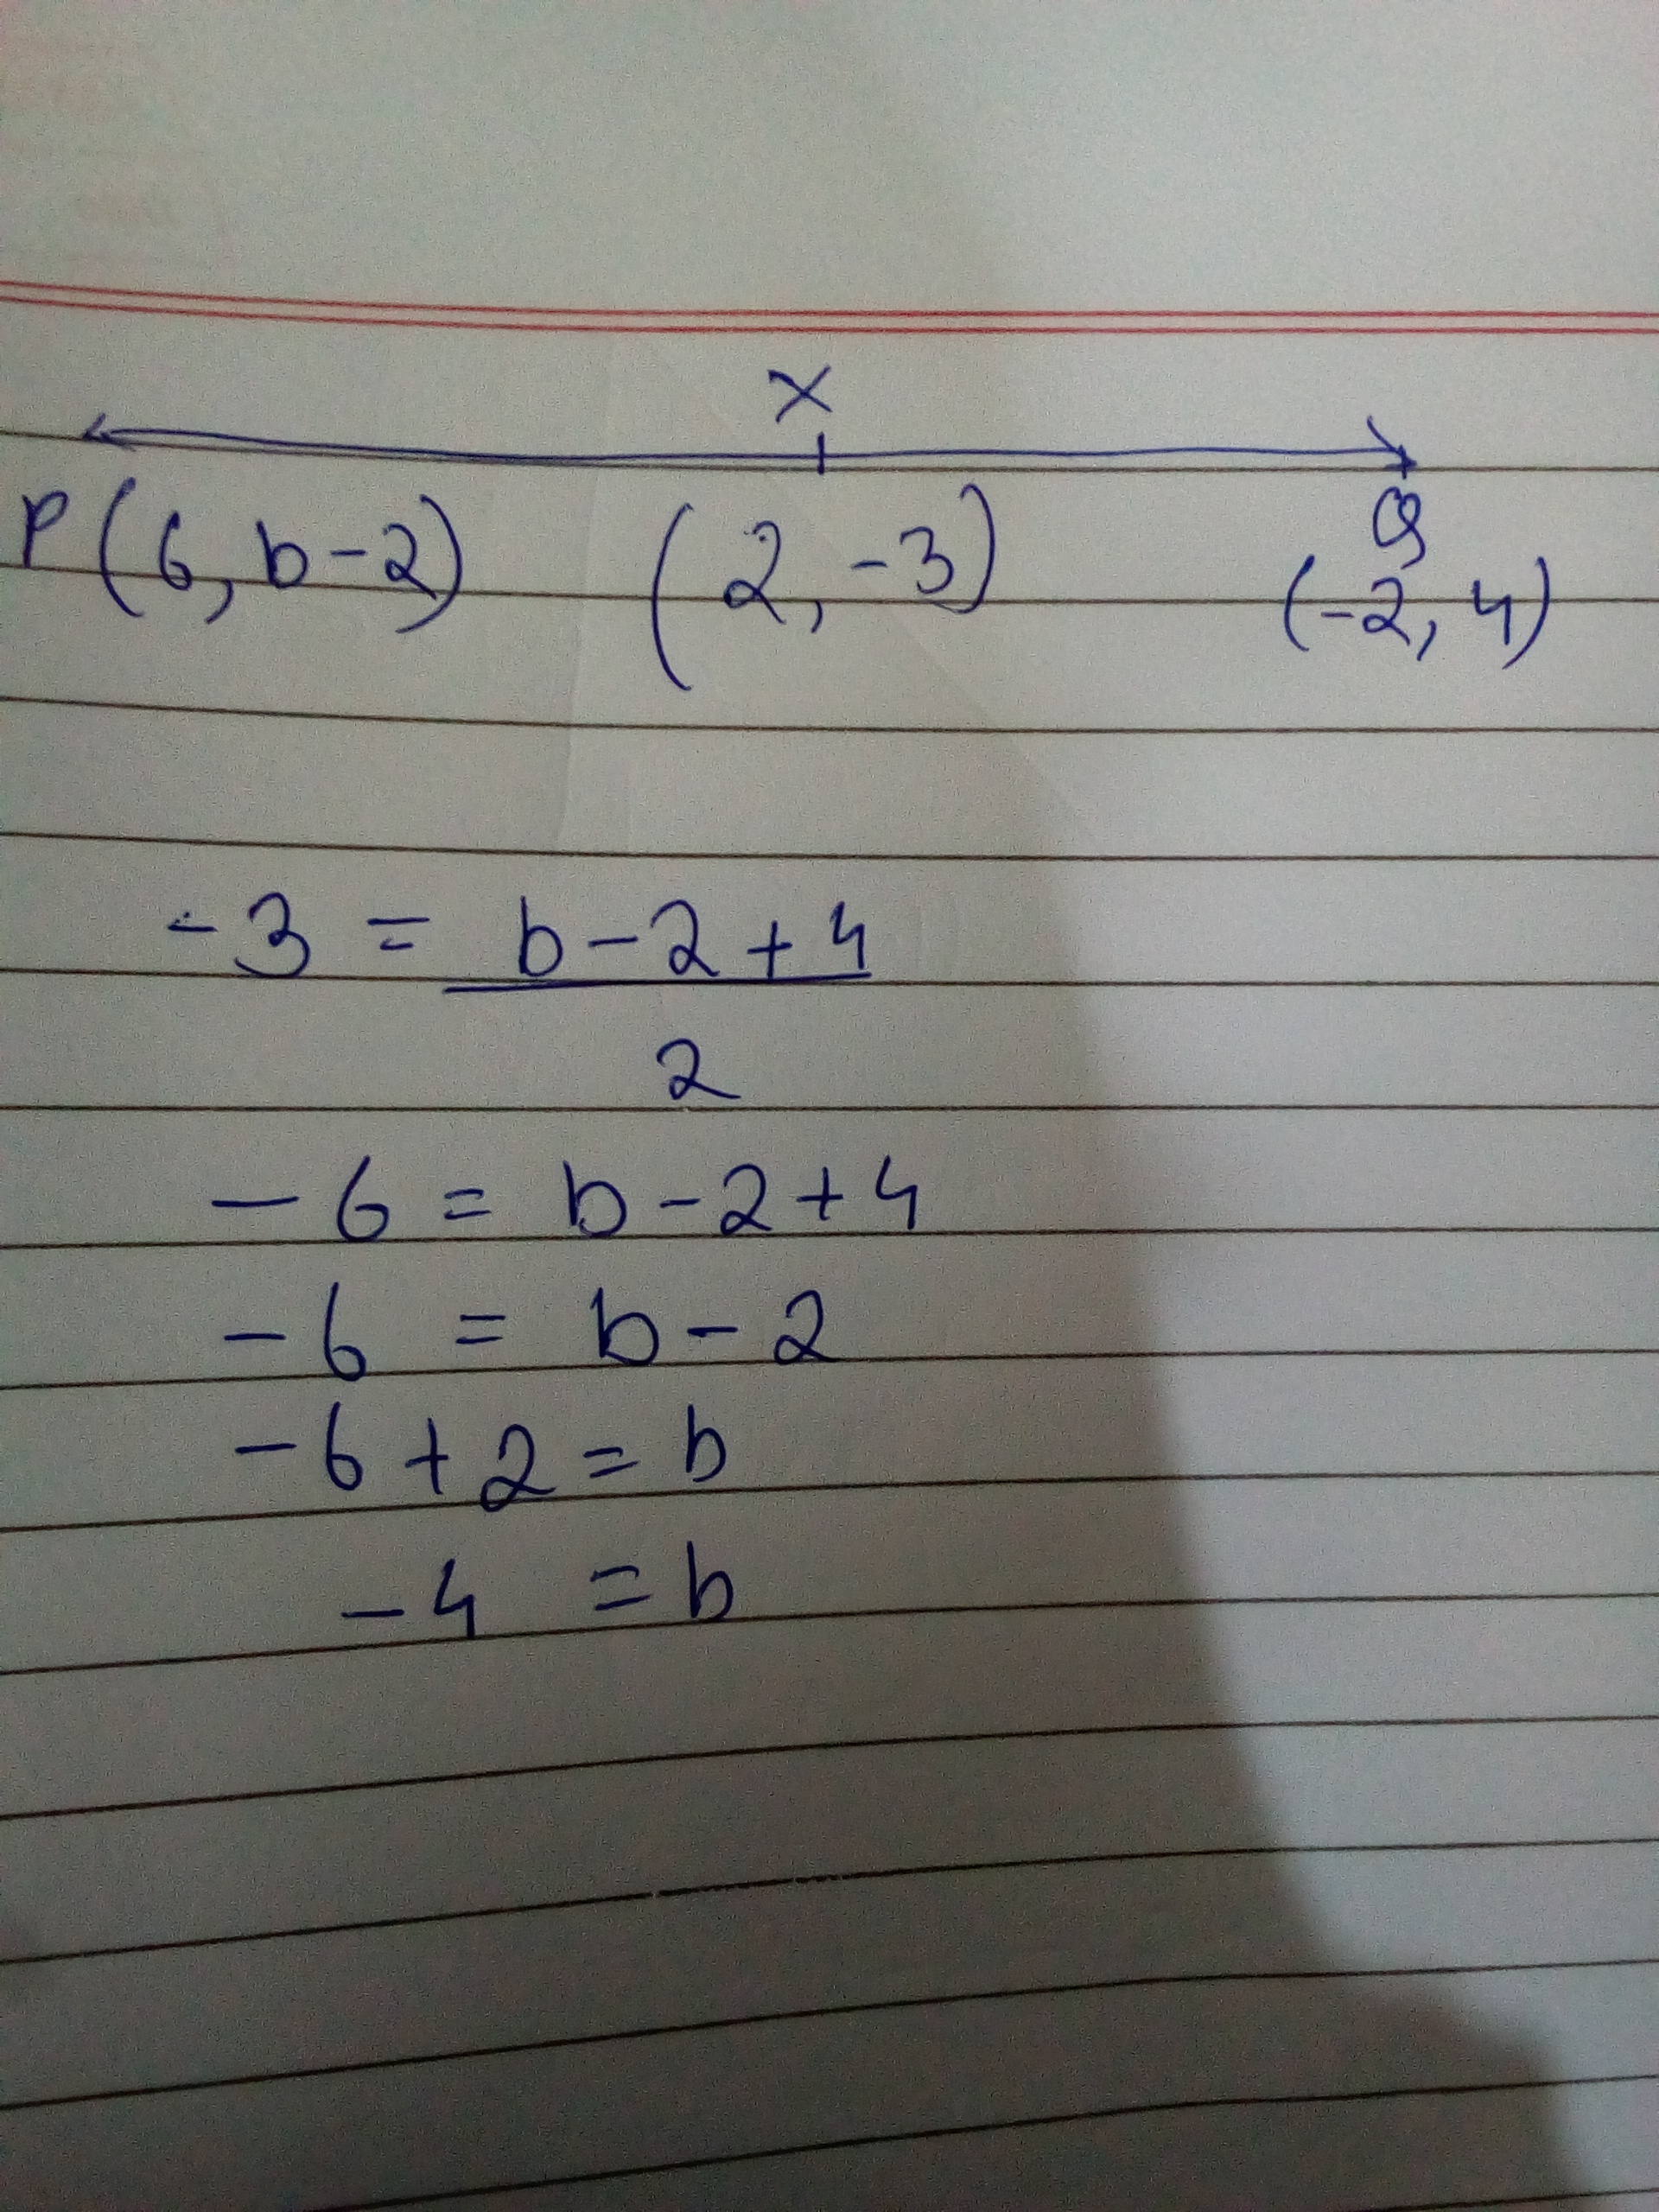 Mid Point of a Line Segment Joining Two Points